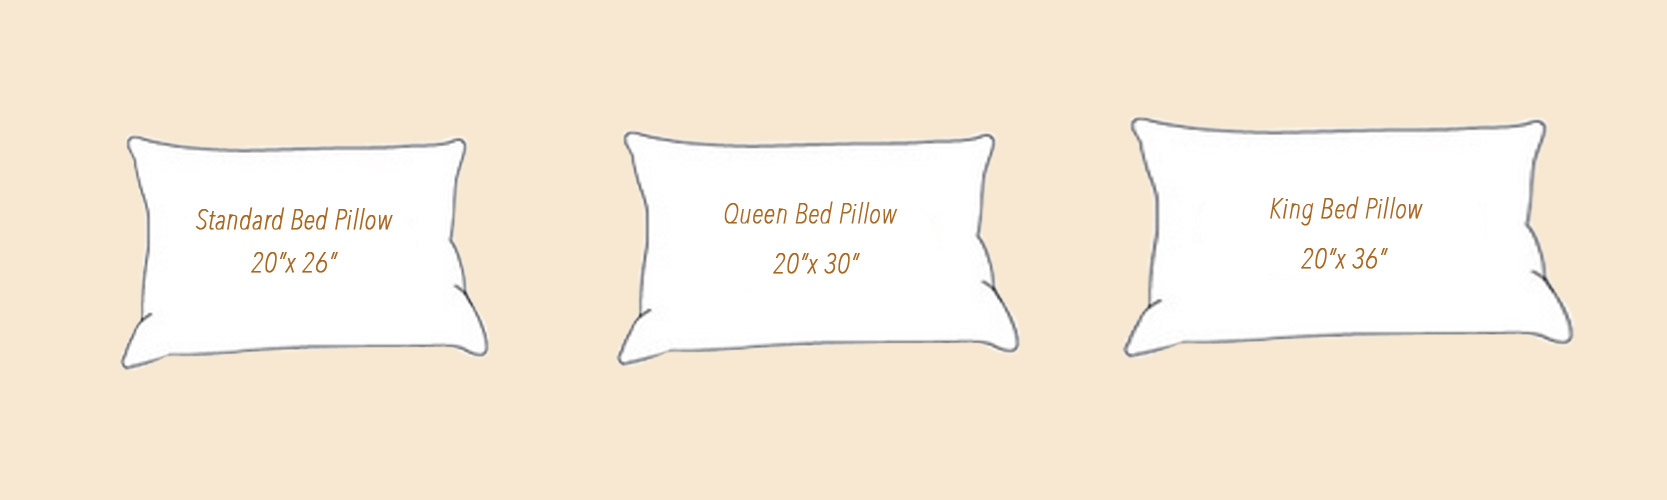 pillow sizes bed pillow sizes